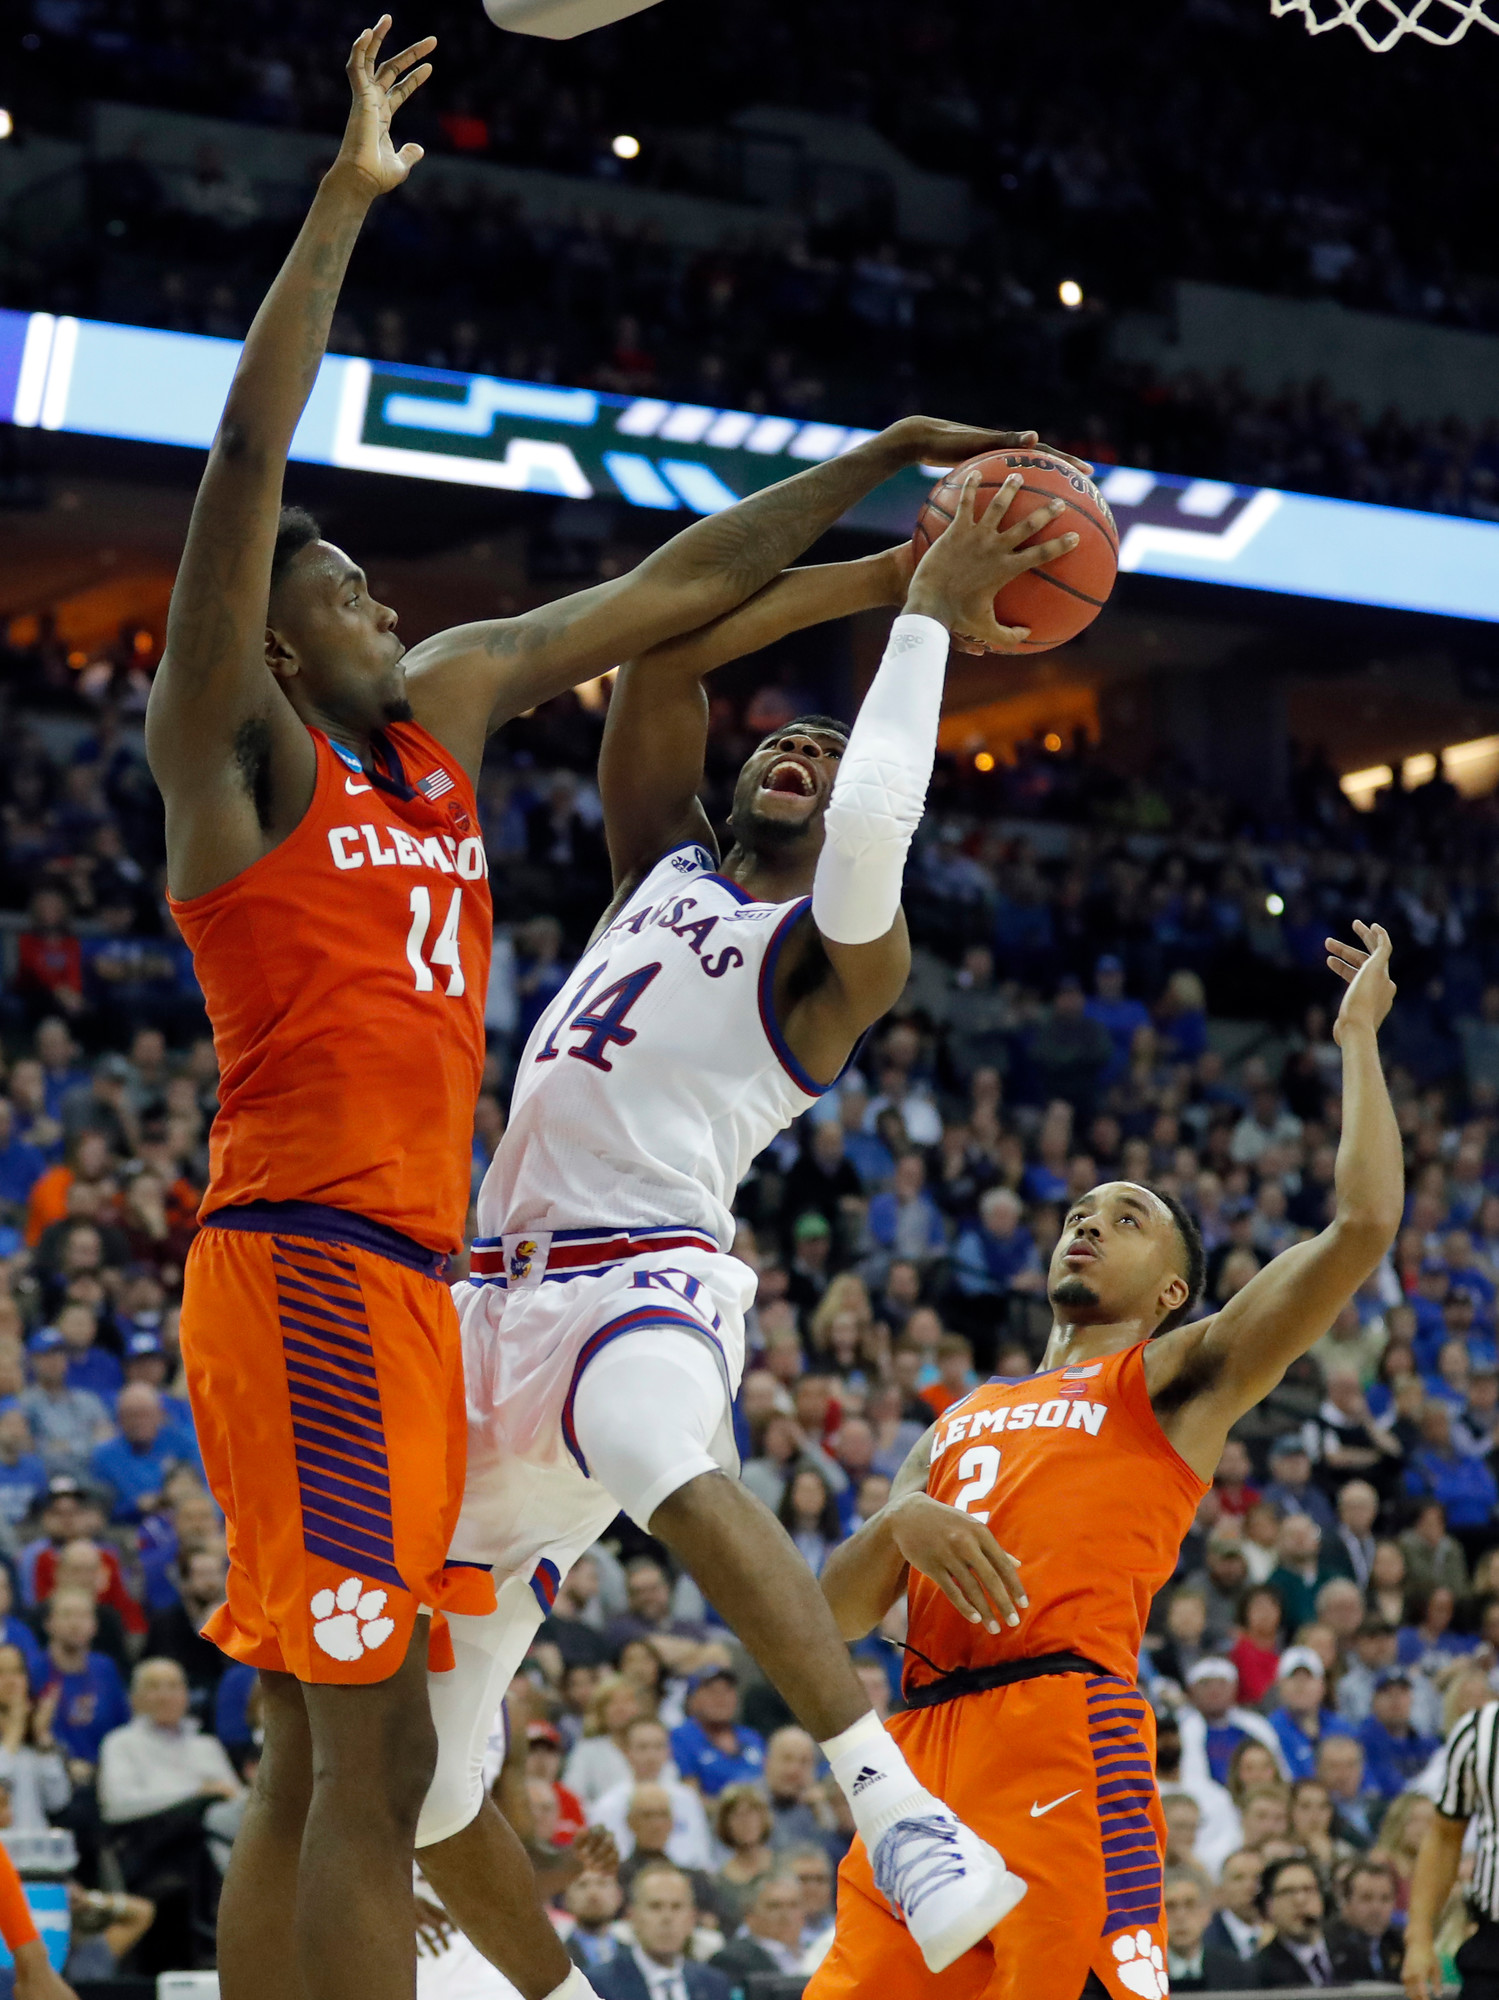 Clemson's Elijah Thomas (14) blocks the shot of Kansas' Malik Newman during the Tigers' 80-76 loss of a Midwest regional semifinal game in the NCAA tournament on Friday in Omaha, Nebraska.